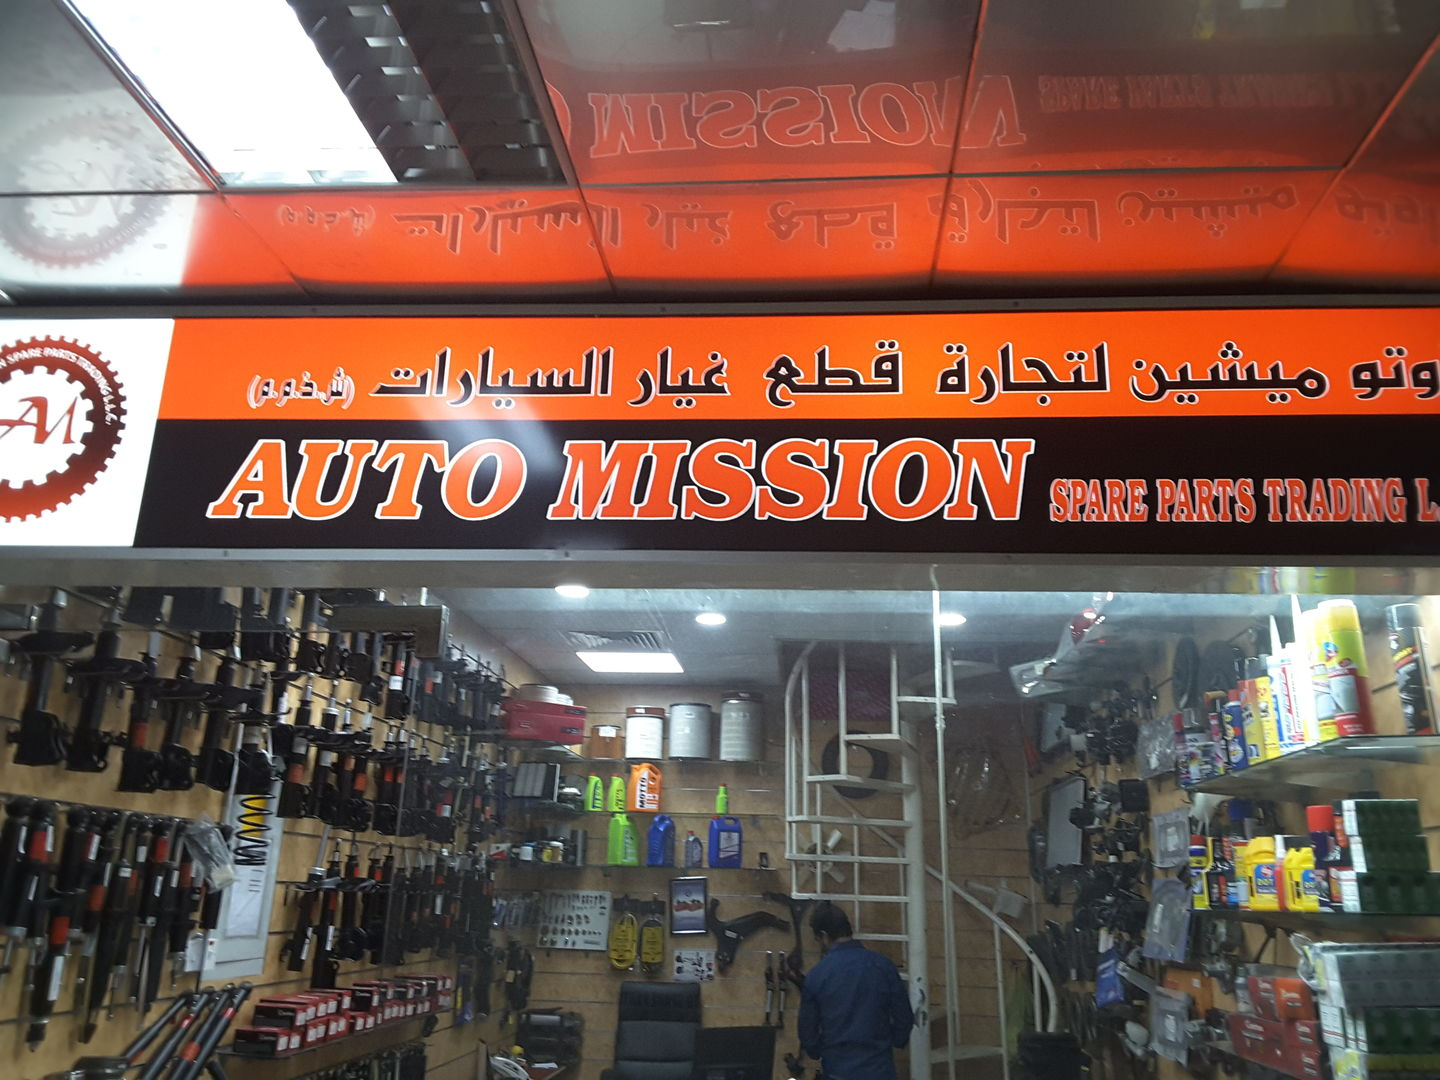 HiDubai-business-auto-mission-spare-parts-trading-transport-vehicle-services-auto-spare-parts-accessories-baniyas-square-dubai-2